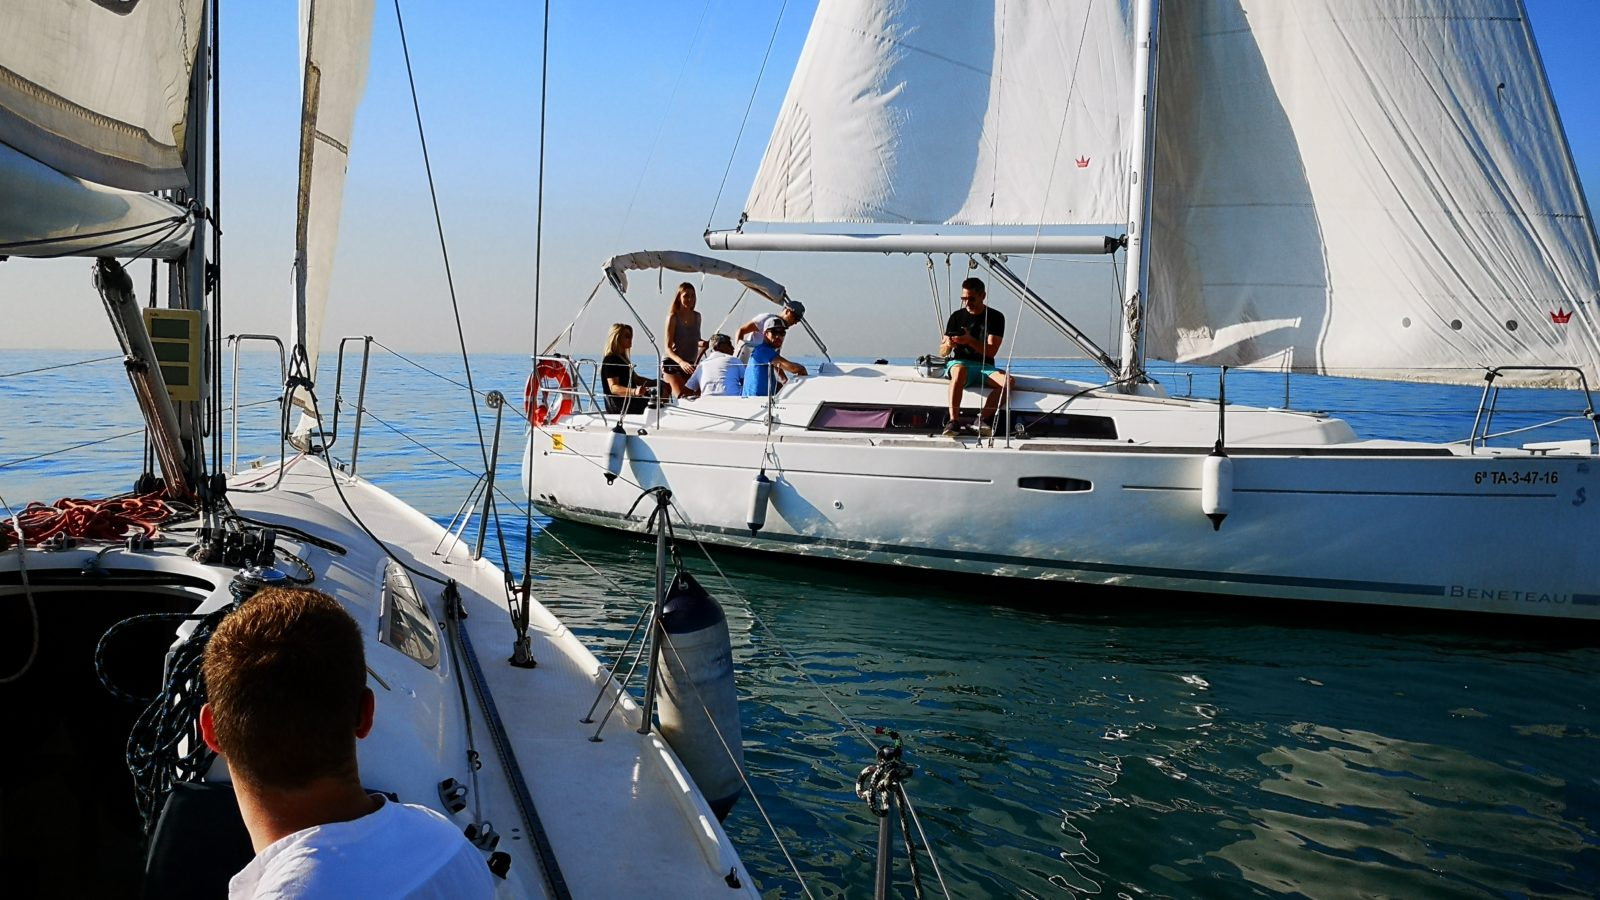 sailing team building sailing event in barcelona